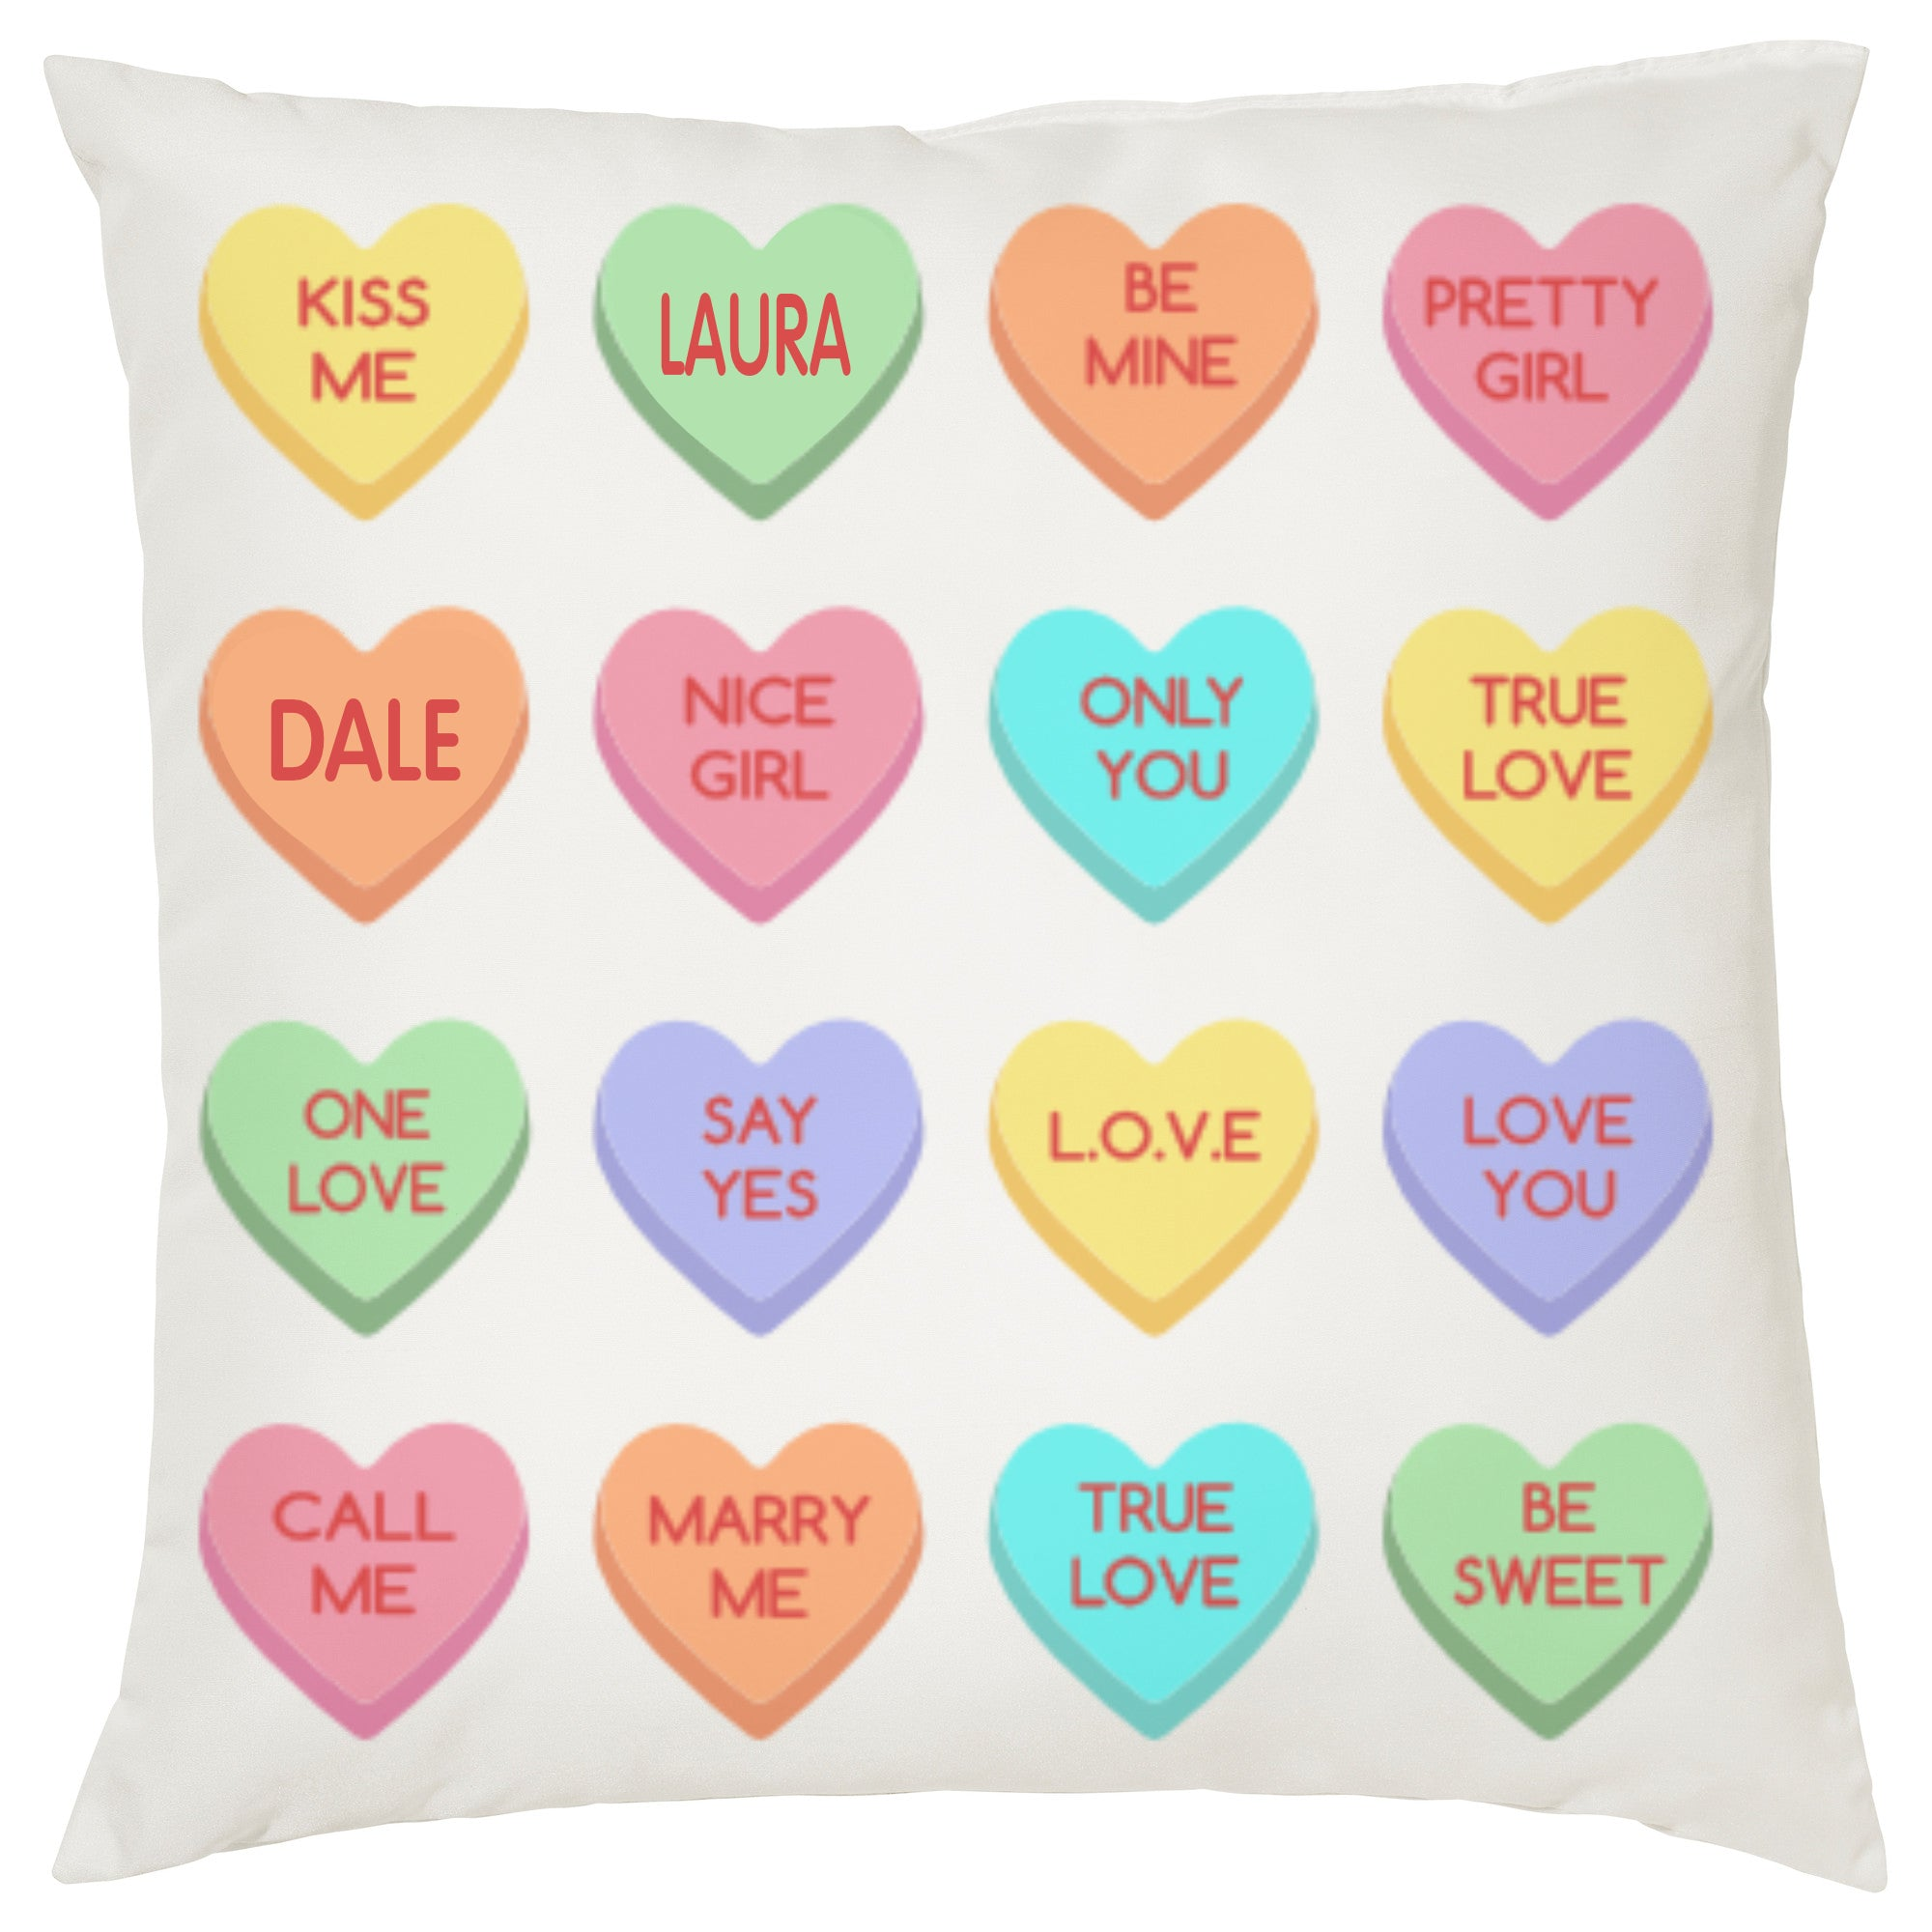 Lovehearts Cushion -Personalise It! - PartyFeverLtd